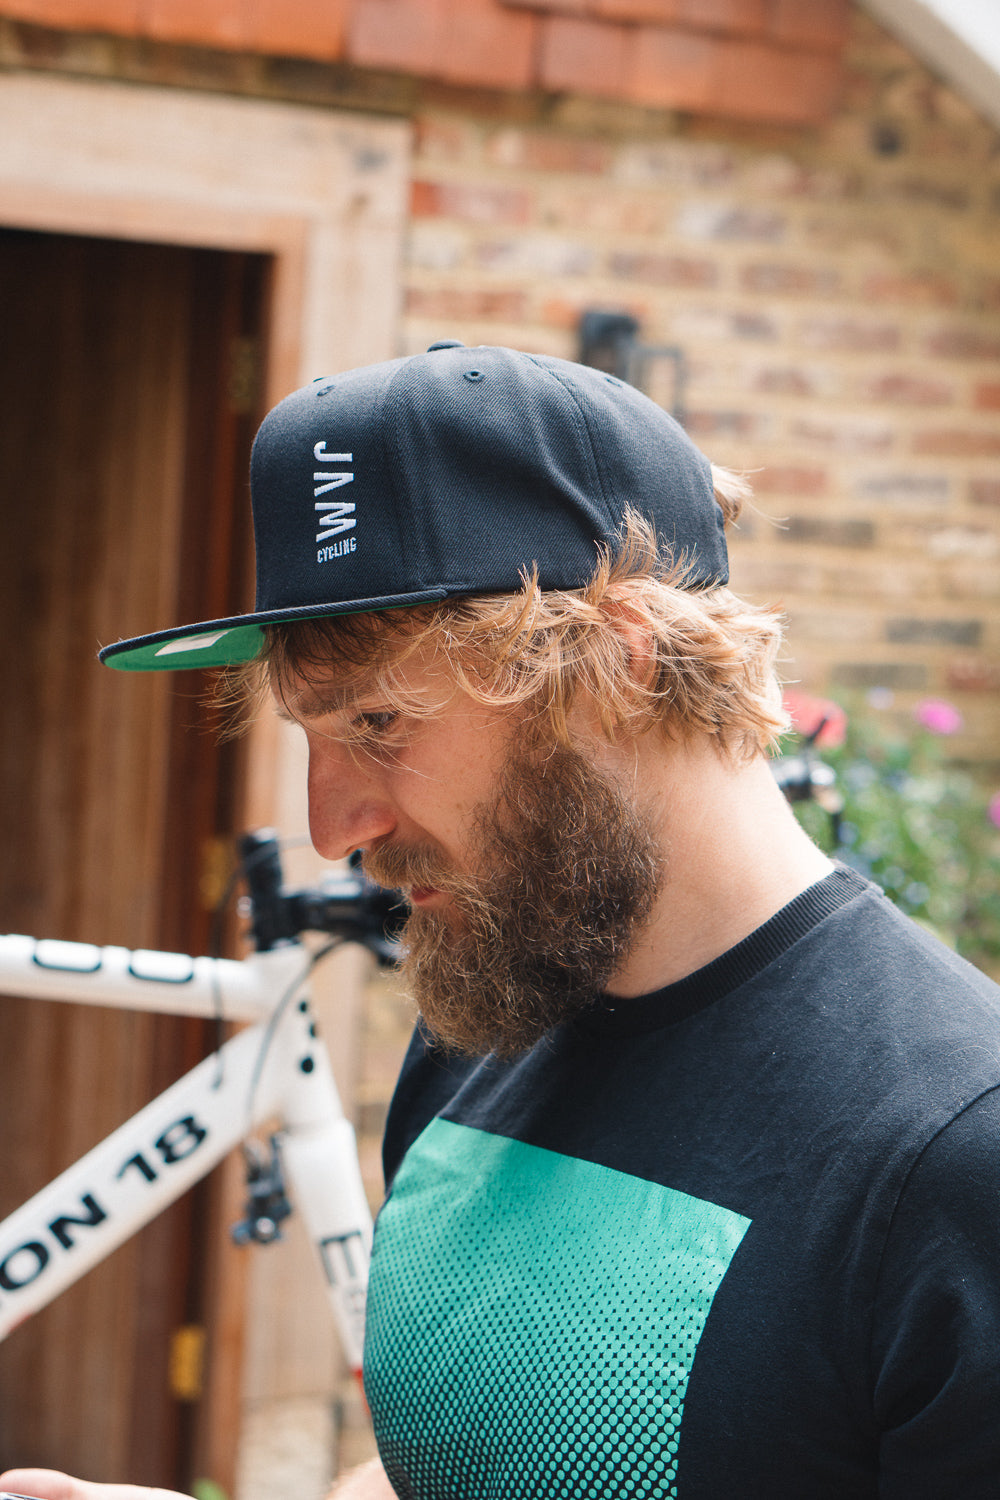 Jam Snapback cap showcasing green base stitched Jam logo symbol worn by JAM CEO fixing a bike